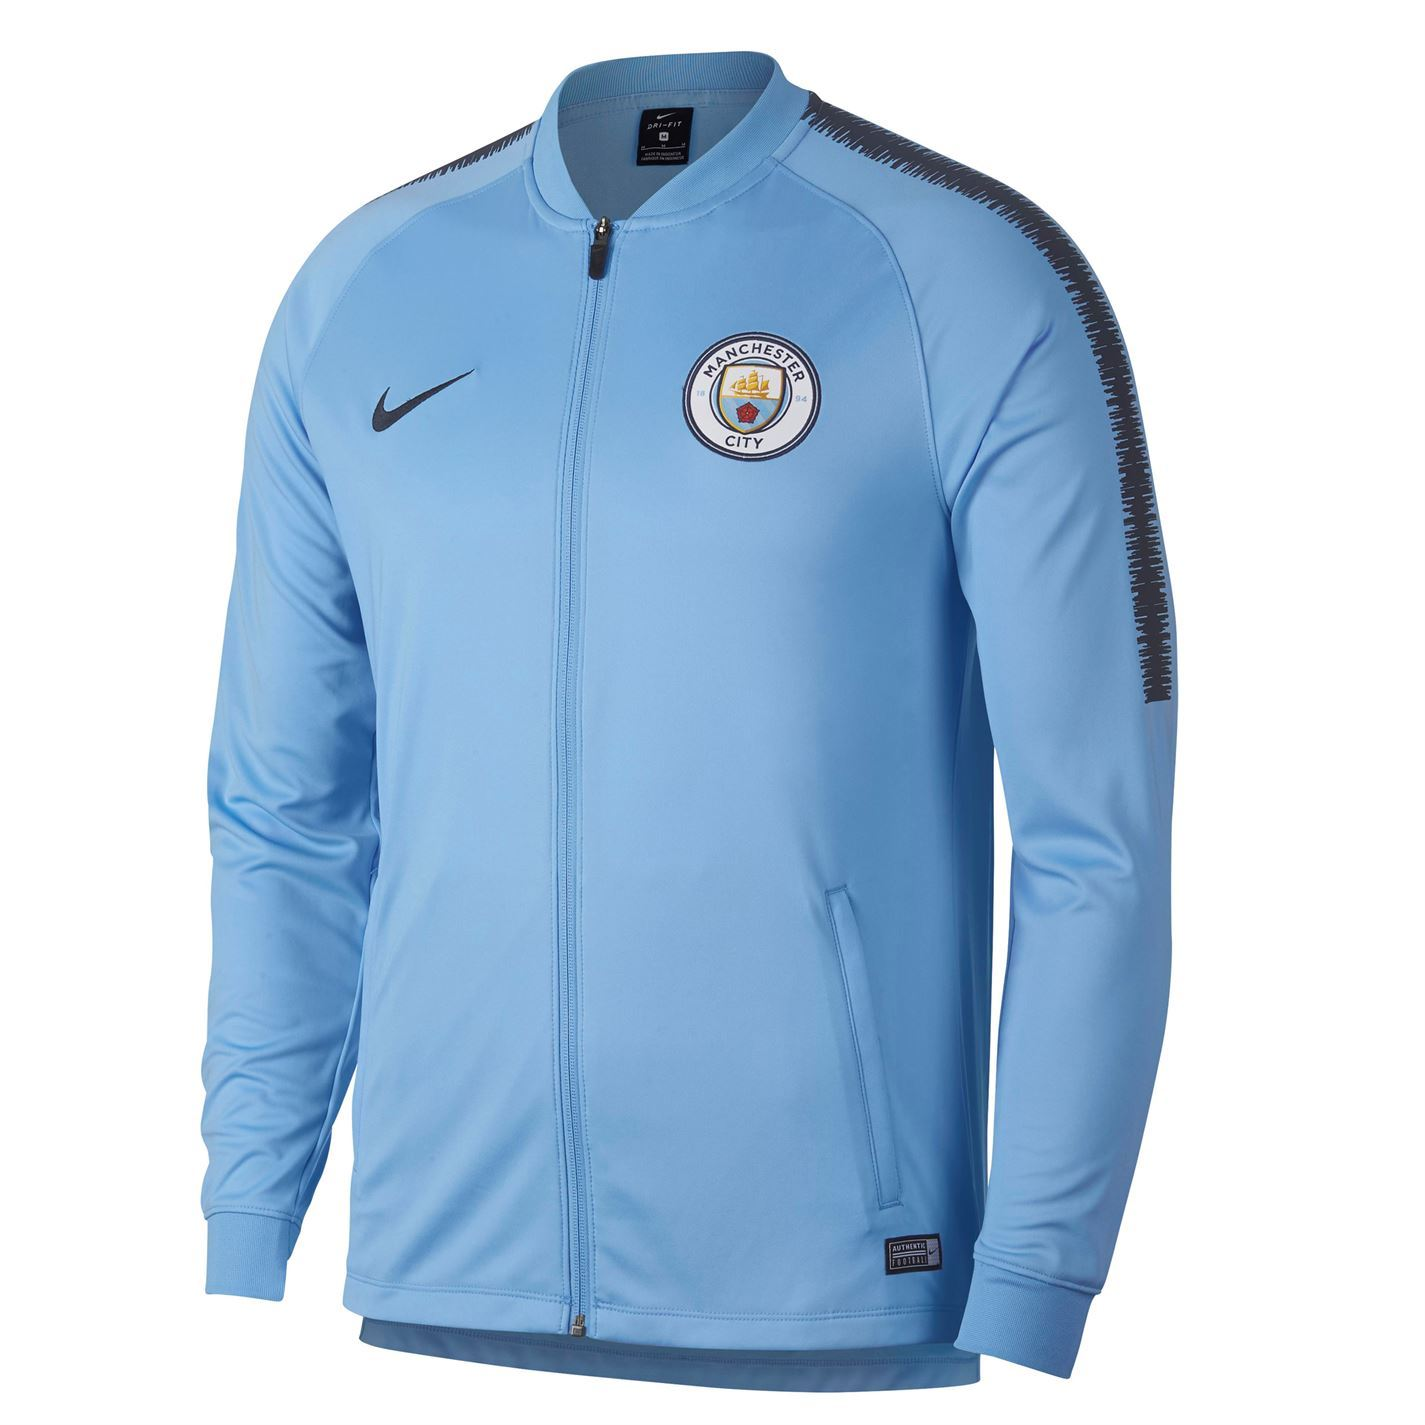 d8963dfac19 Nike Manchester City Track Jacket Mens Football Soccer Tracksuit Top